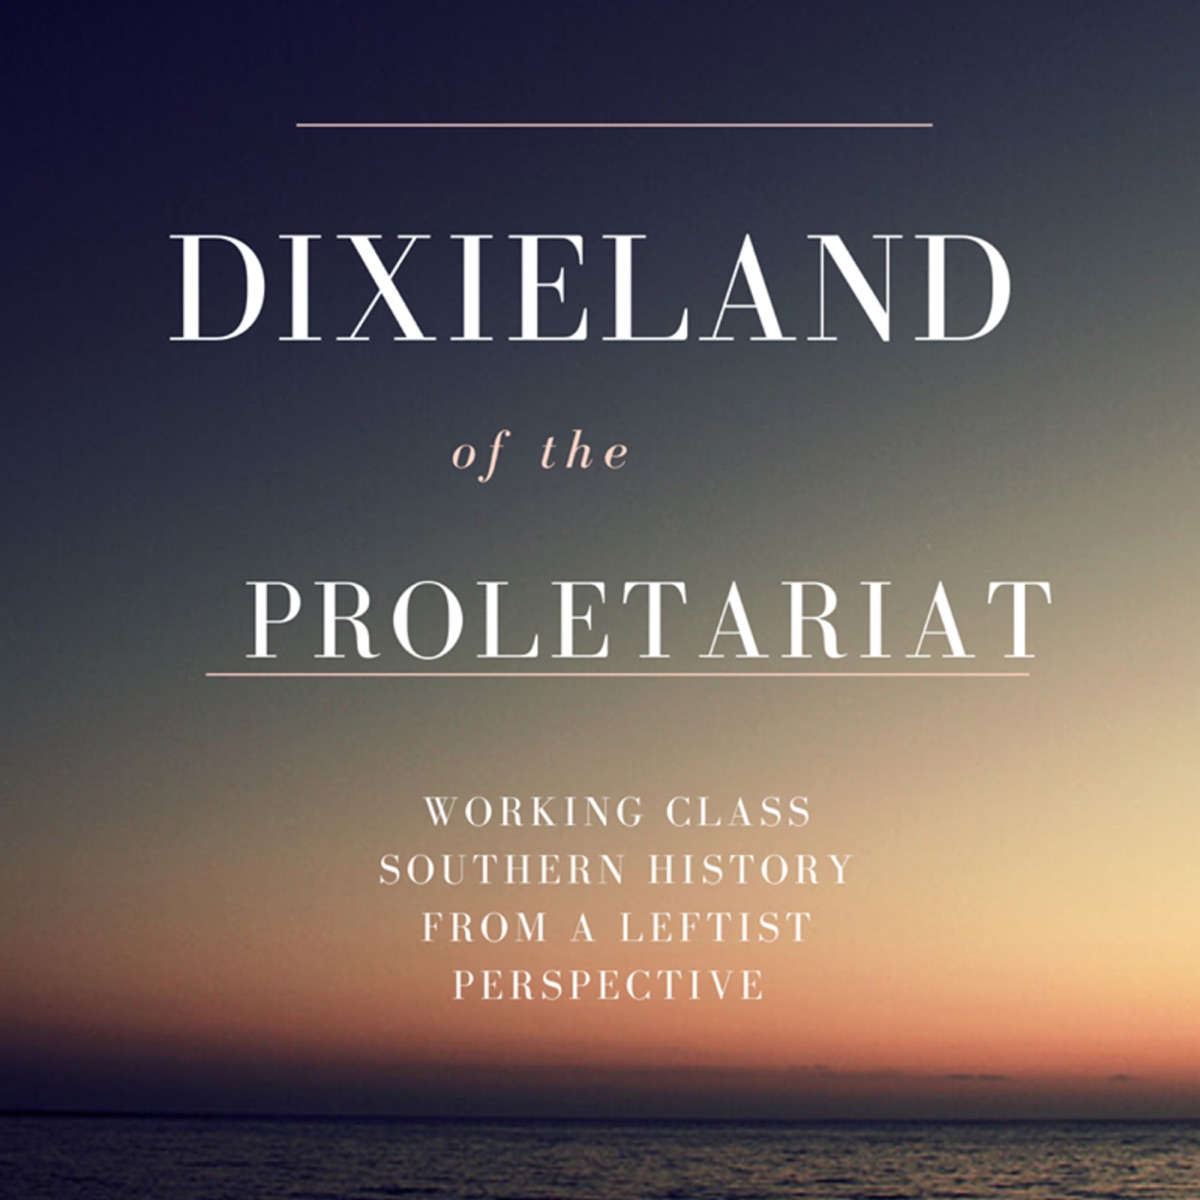 Dixieland of the Proletariat